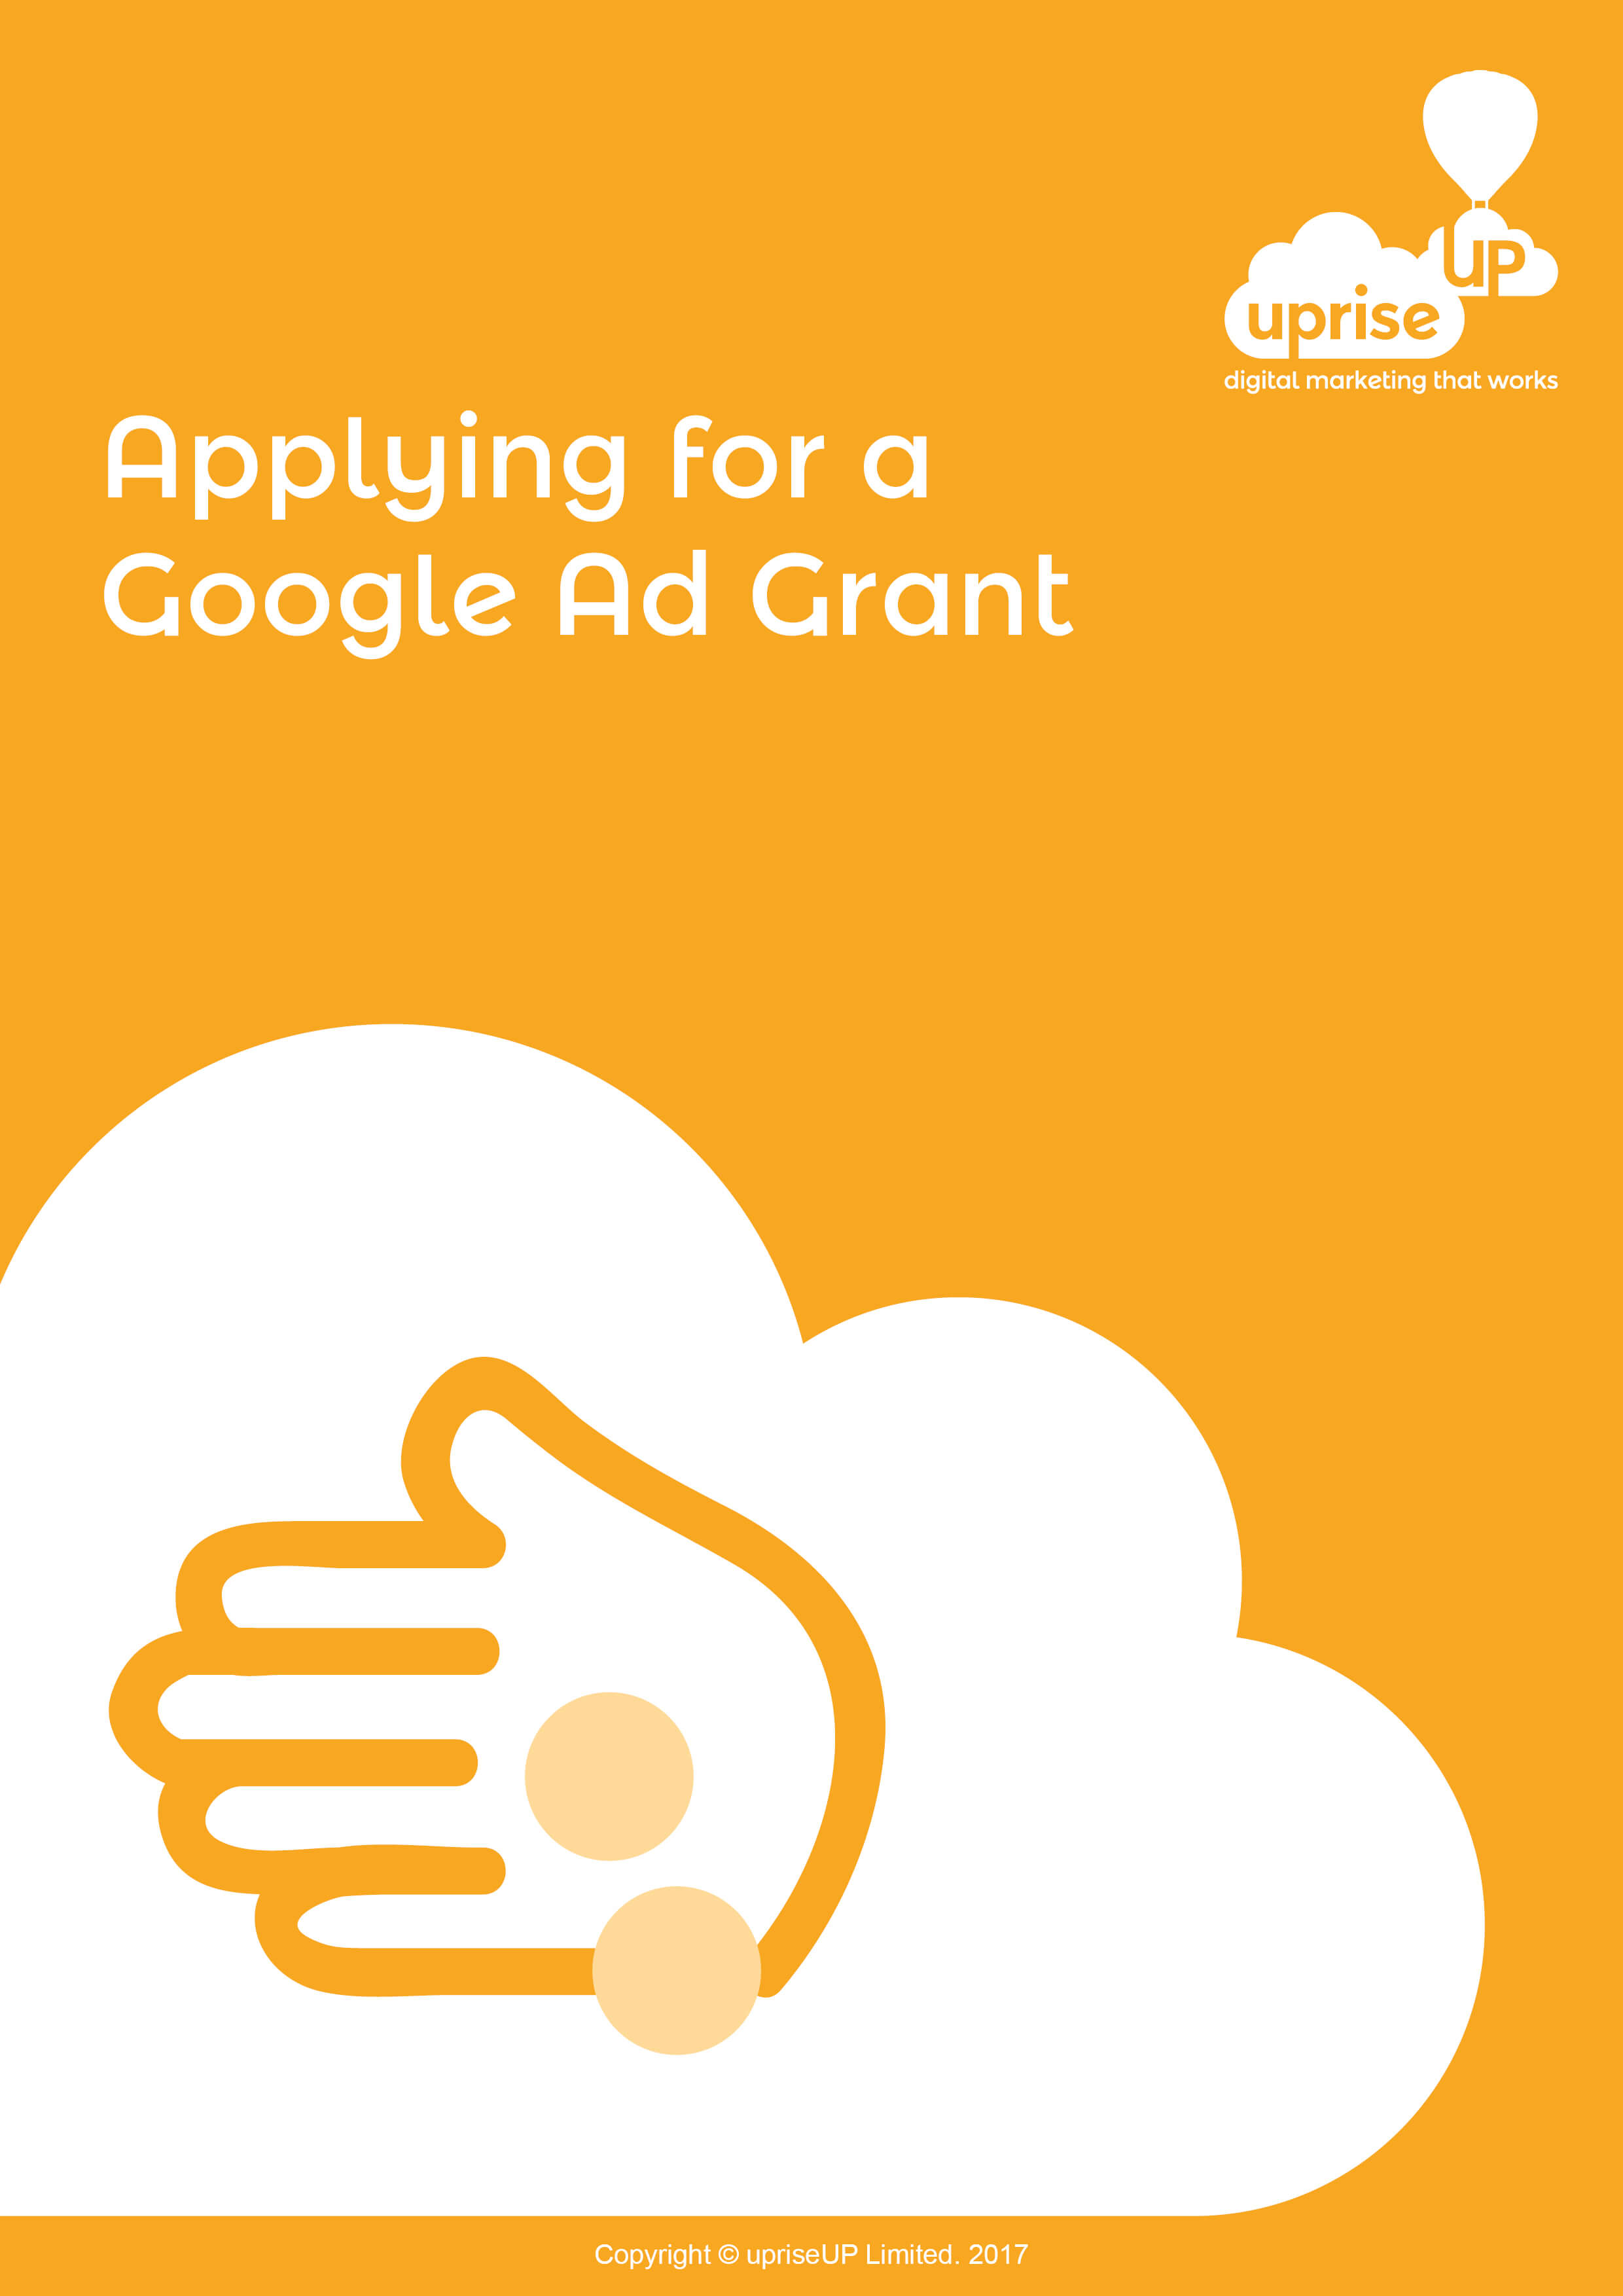 Applying for a Google Grant eBook Cover